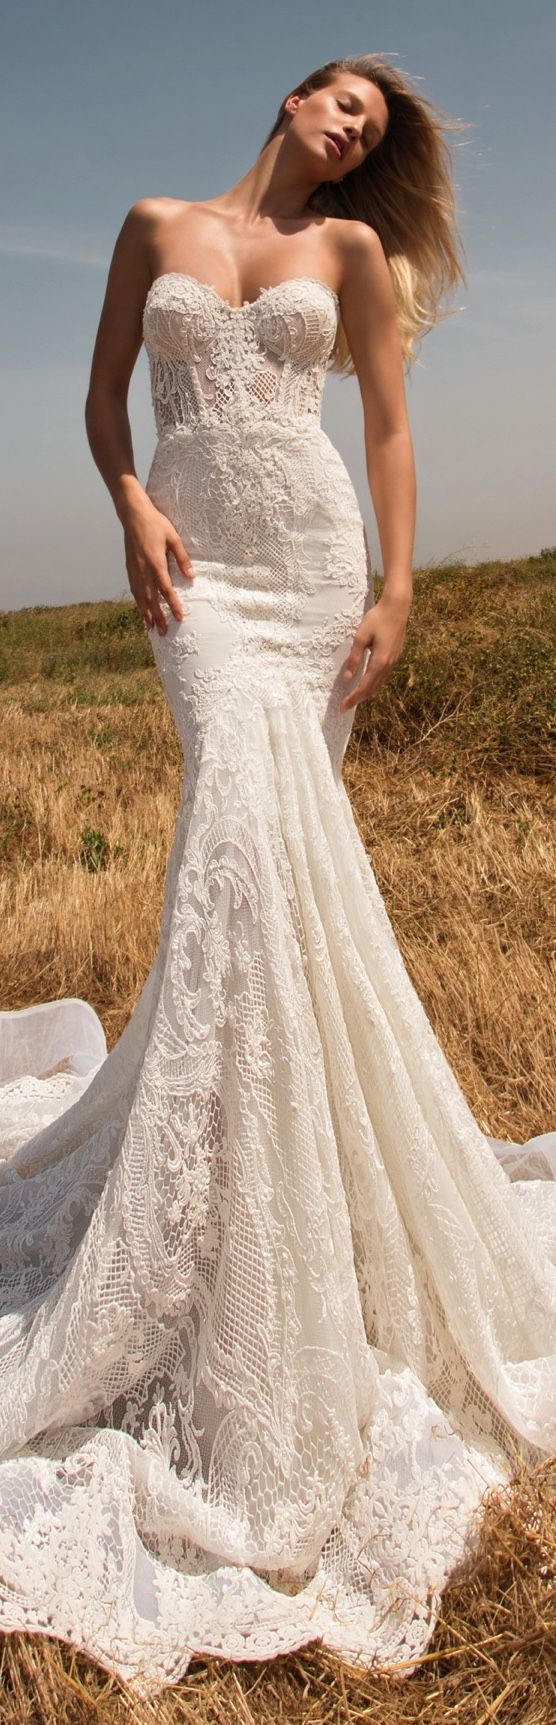 Best 25+ Tight wedding dresses ideas on Pinterest | Essence of ...